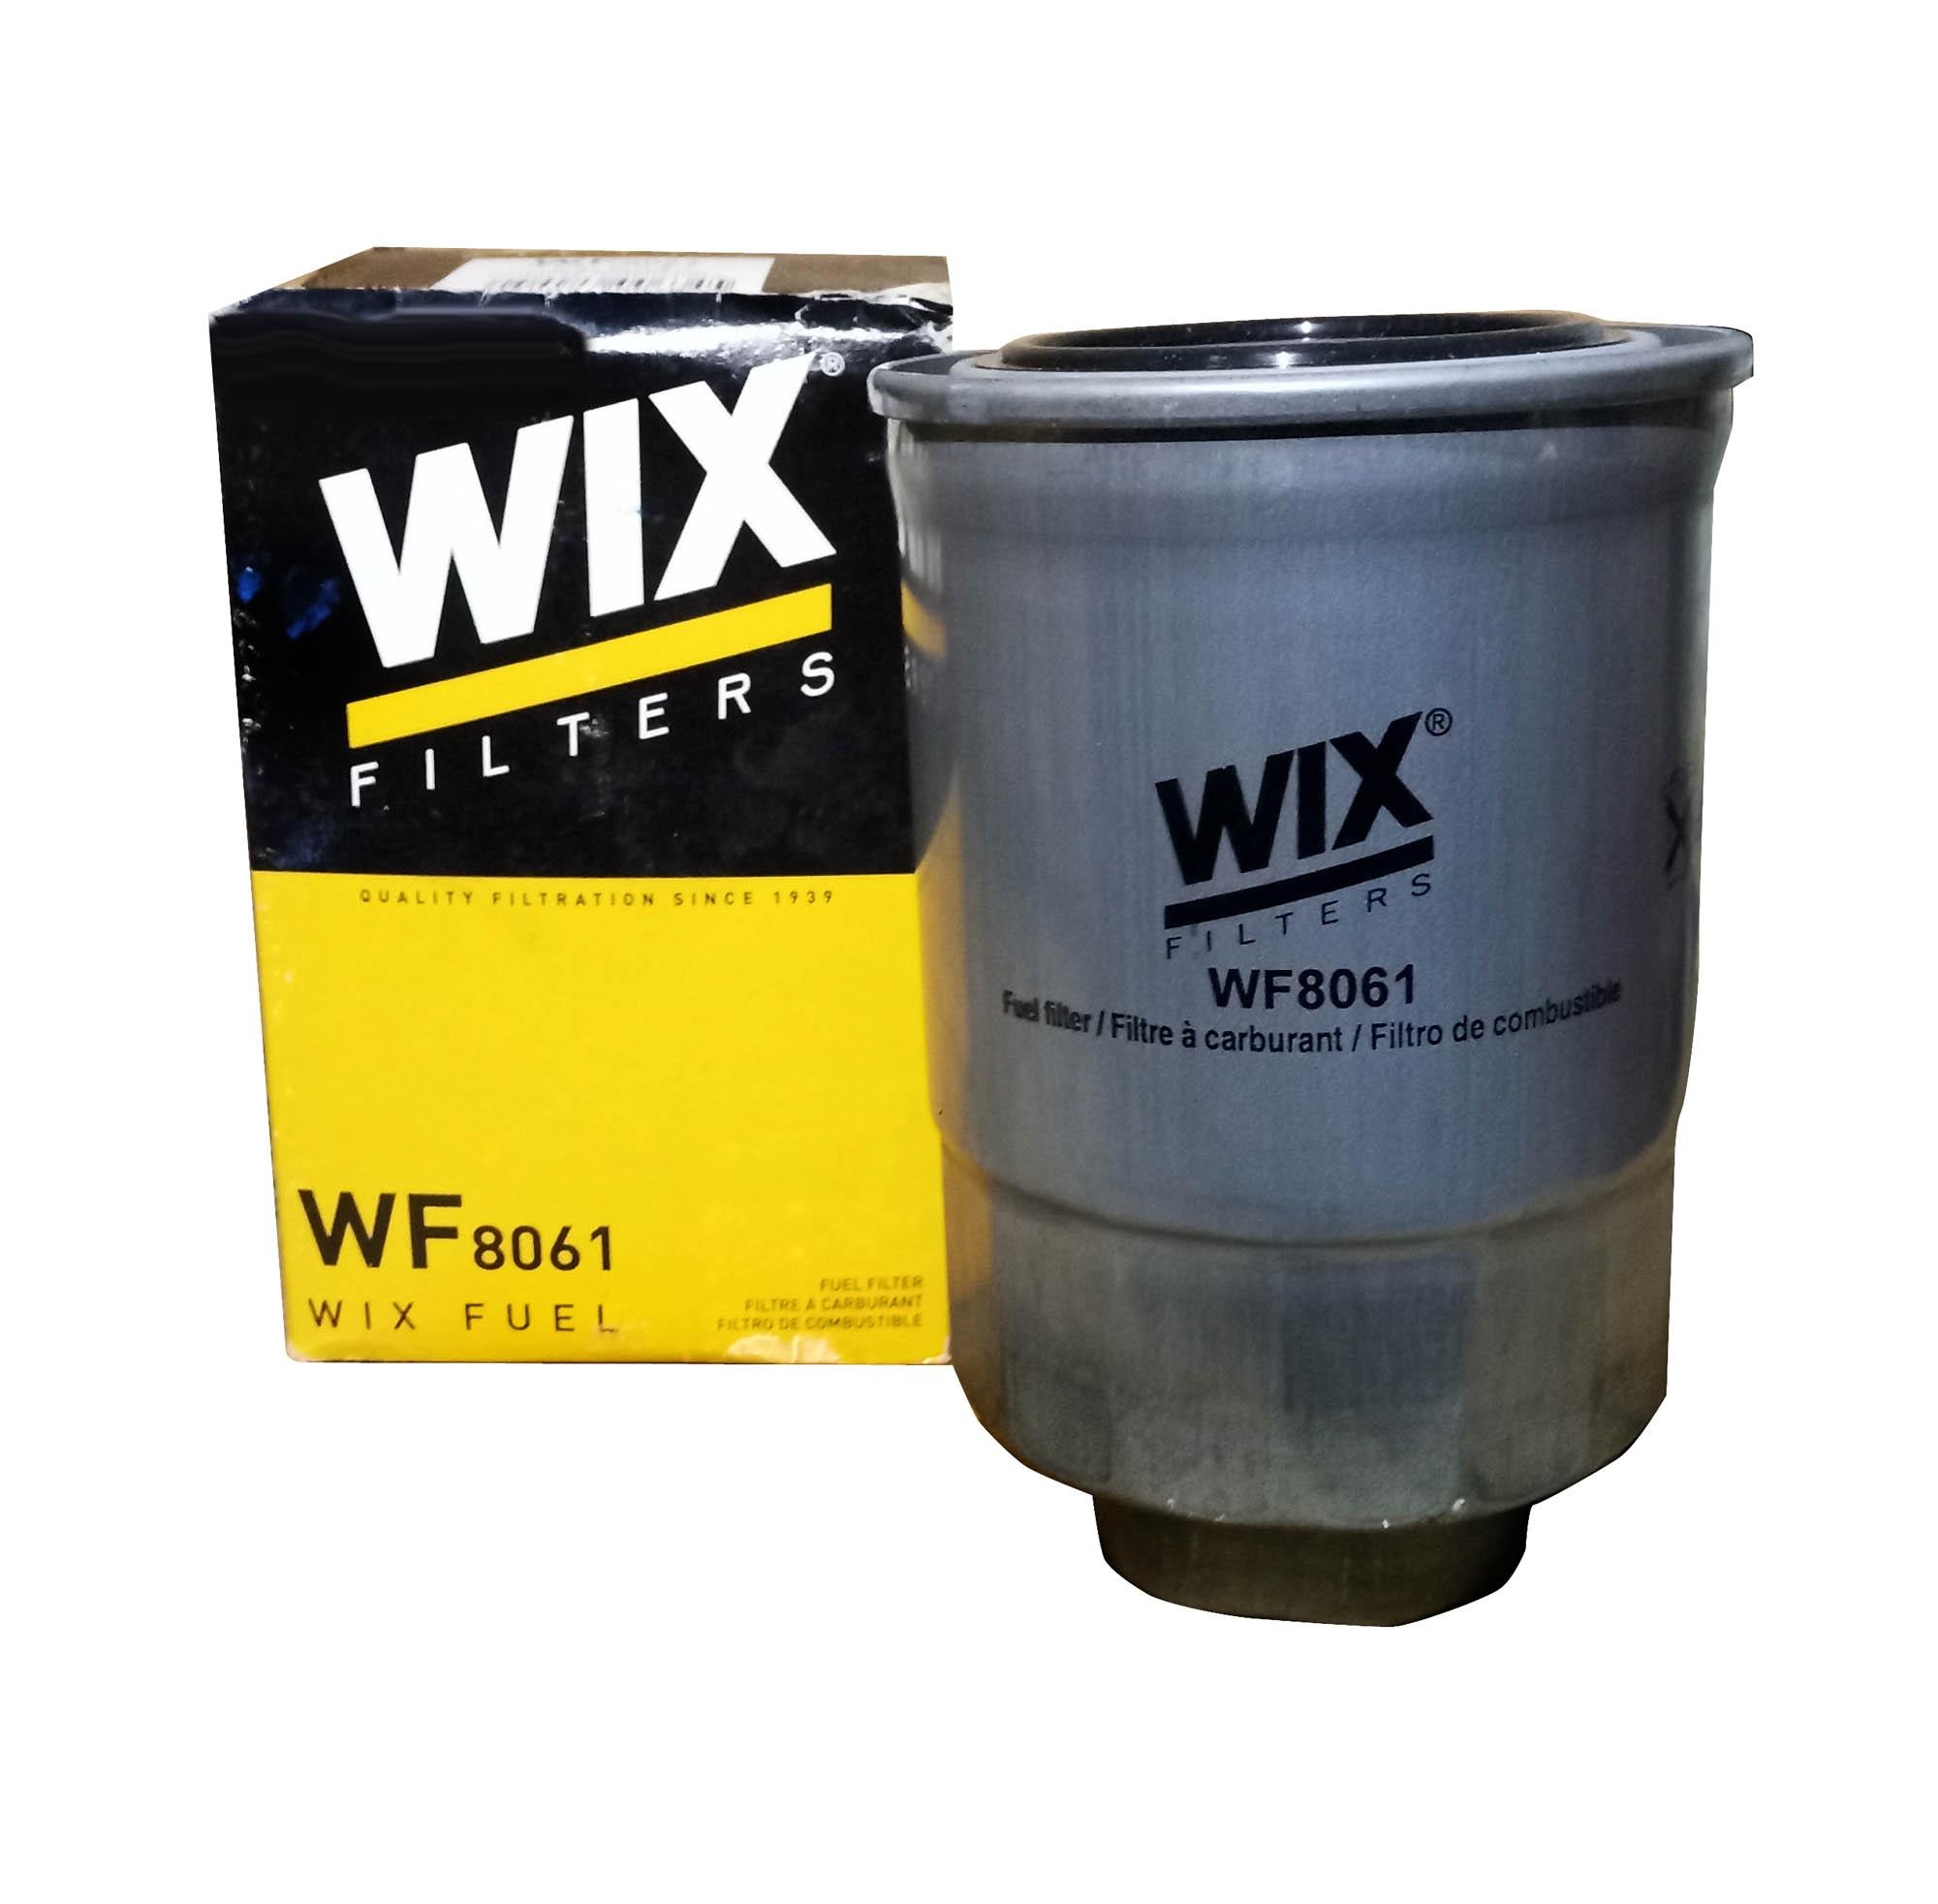 Fuel Filter For Sale Gas Online Brands Prices Reviews In 94 Chevy Truck Wix Wf8061 Mitsubishi Montero Sport Triton Di D 2006 11